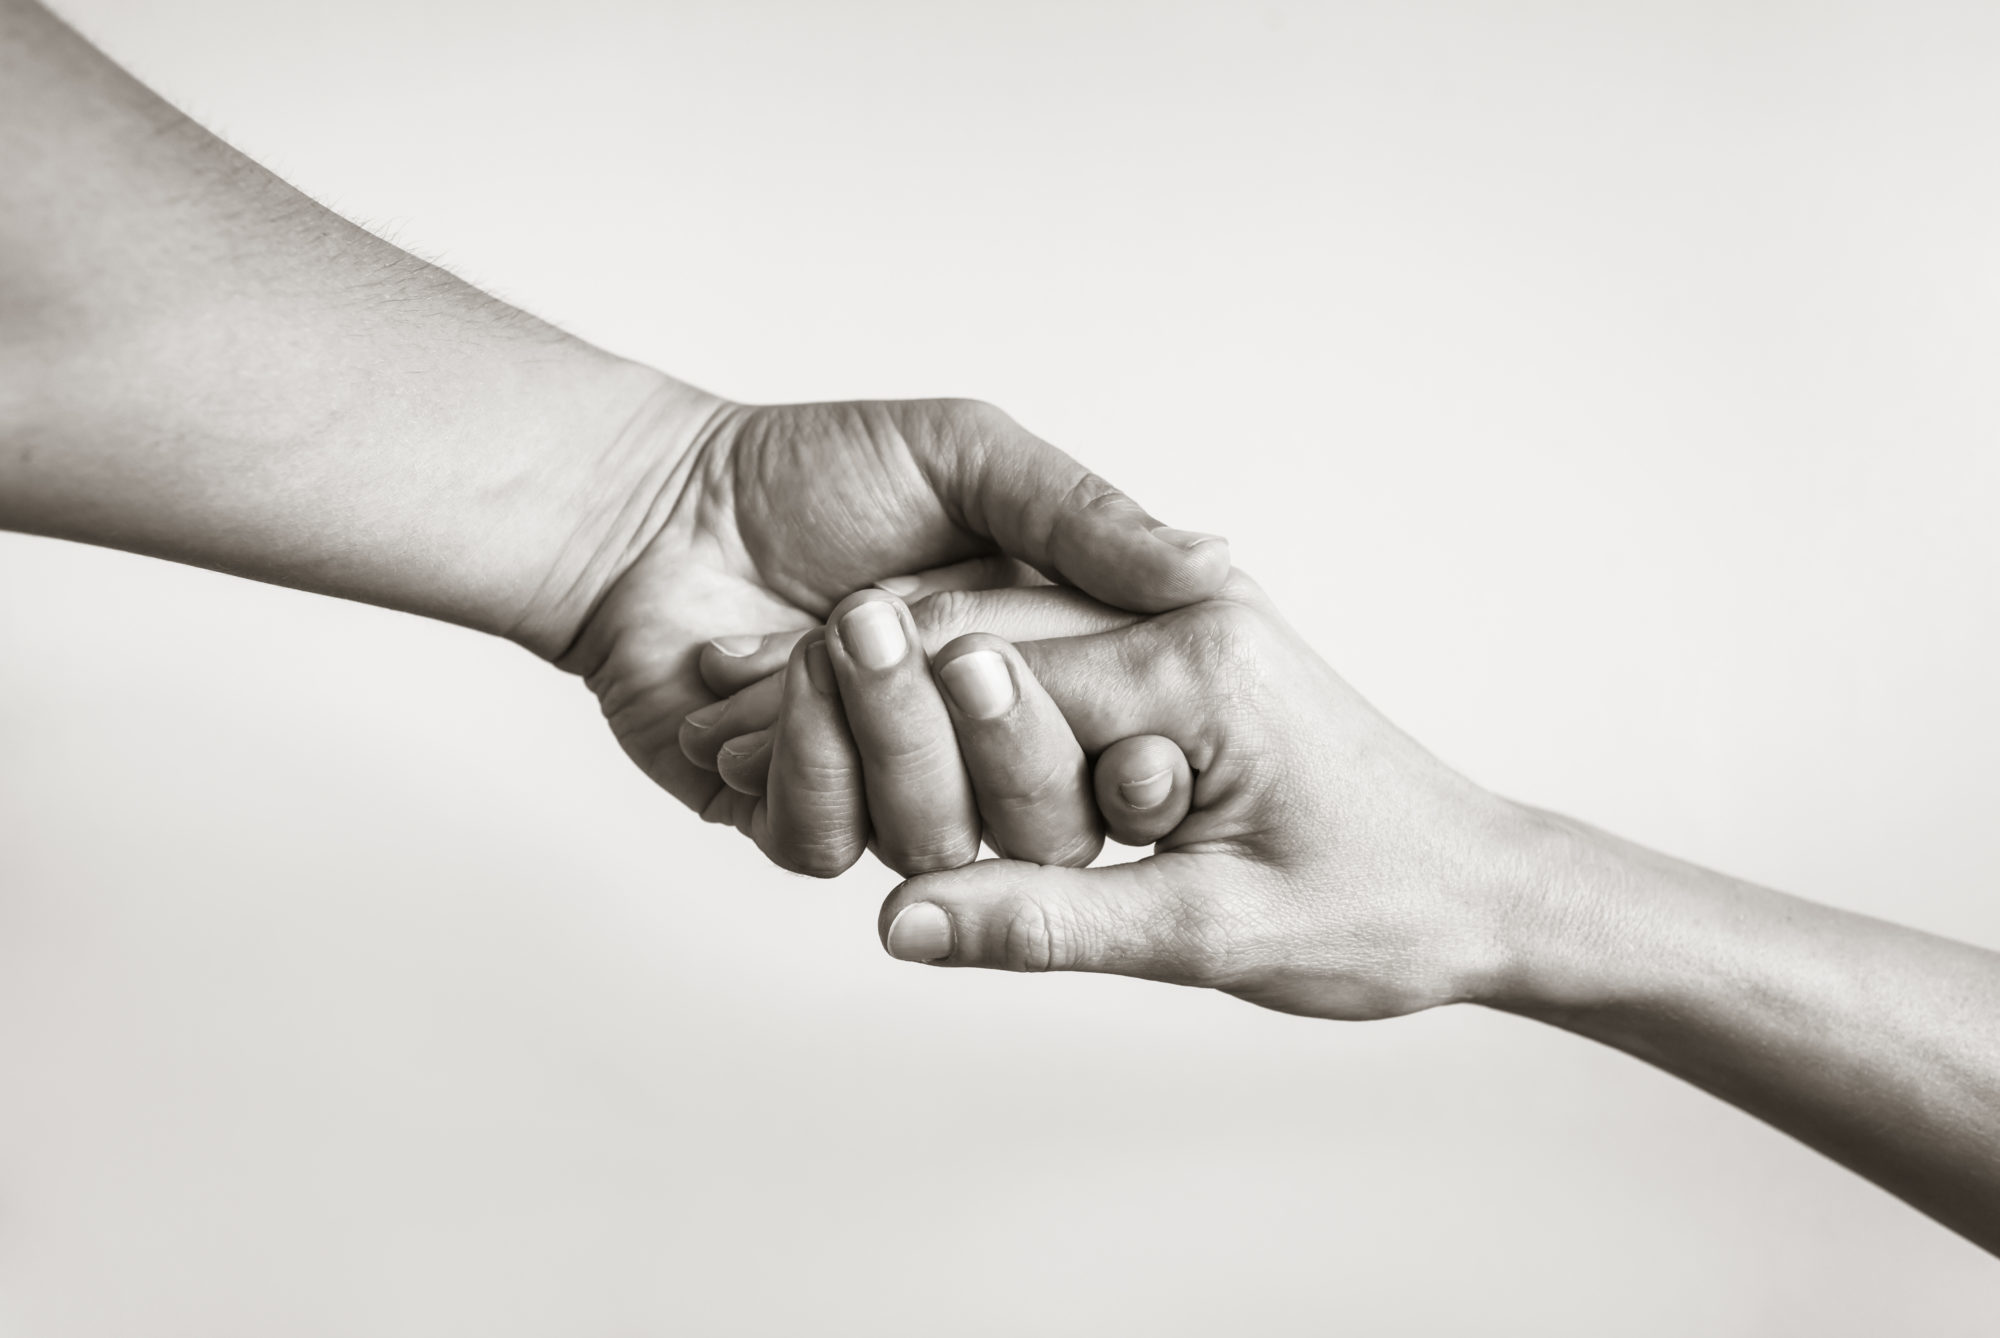 Leave a Philanthropic Legacy With a Charitable Remainder Trust